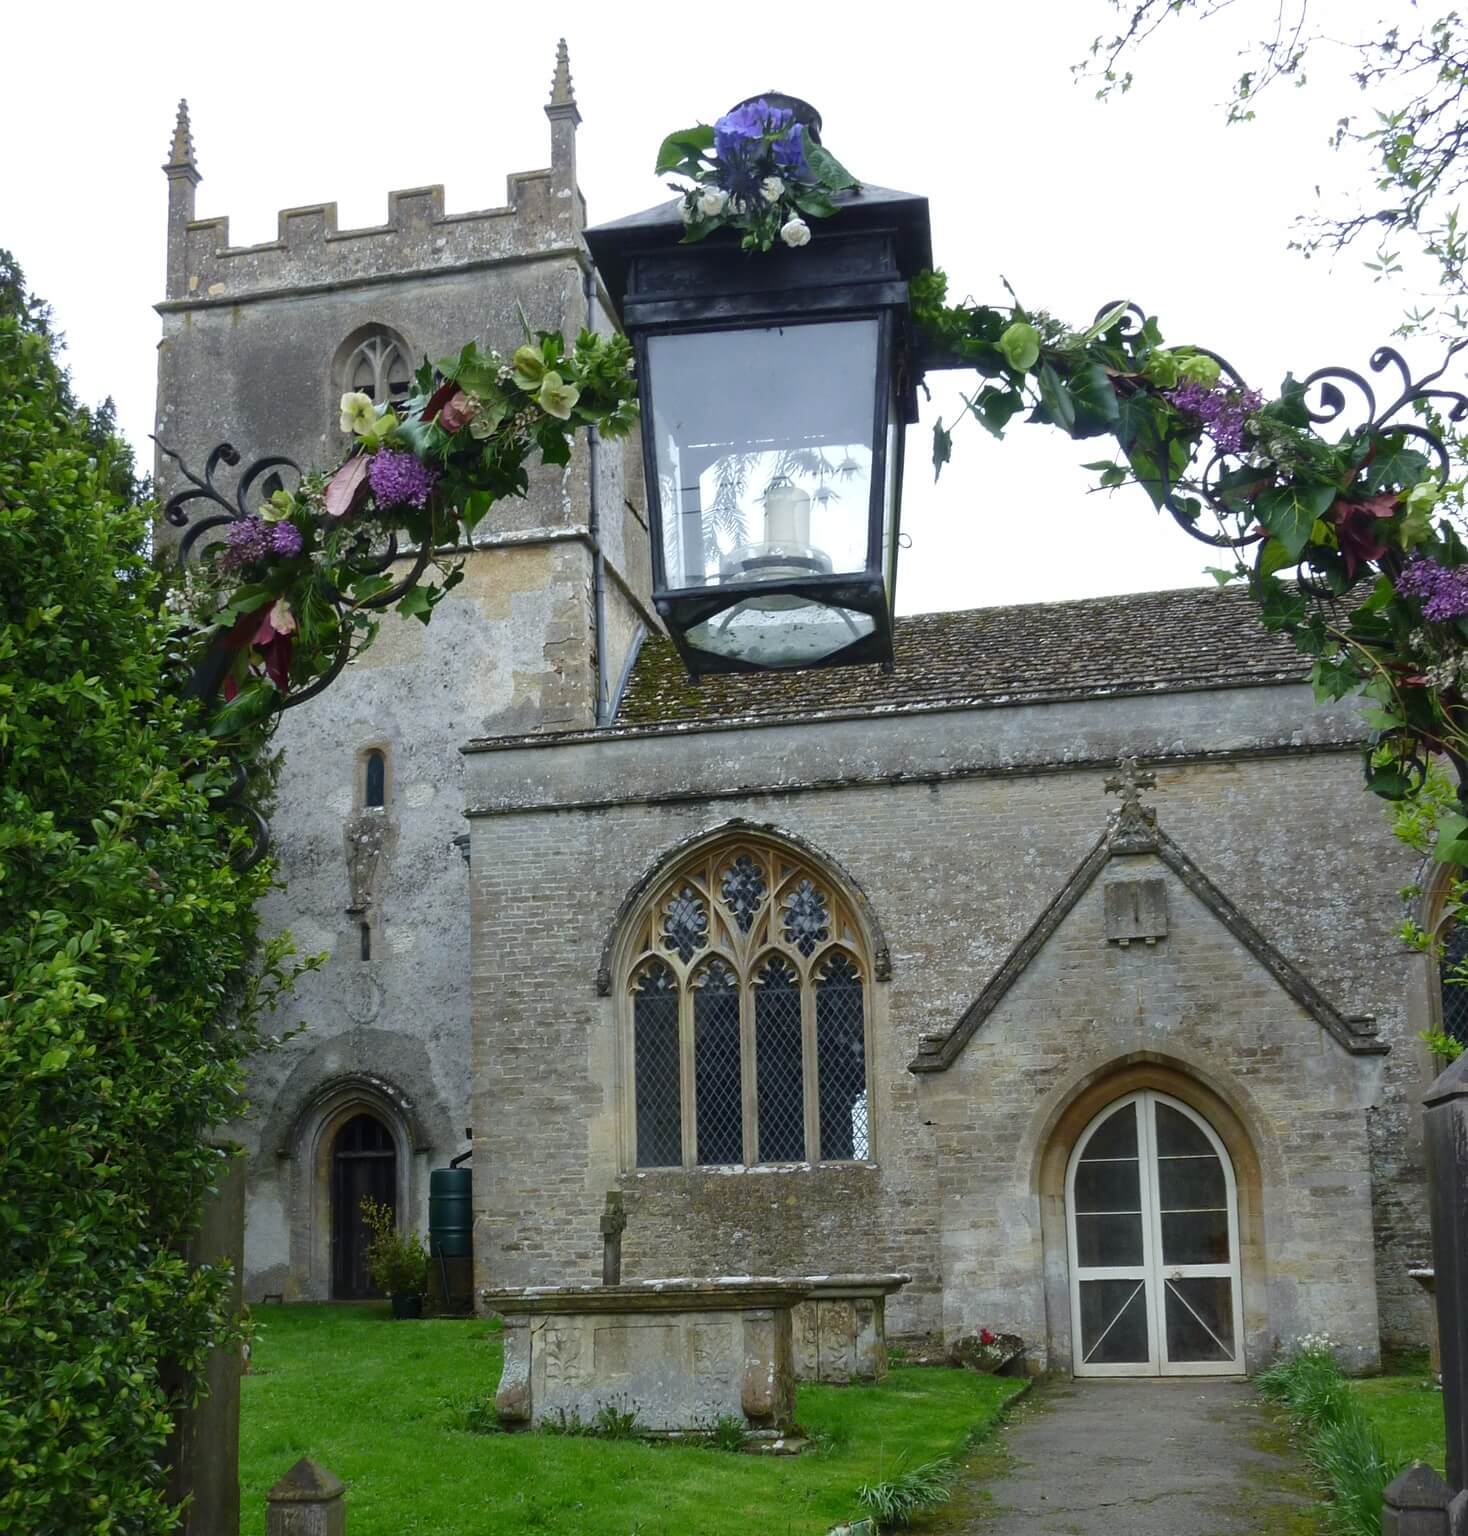 St Mary's Church Beverston - Outside